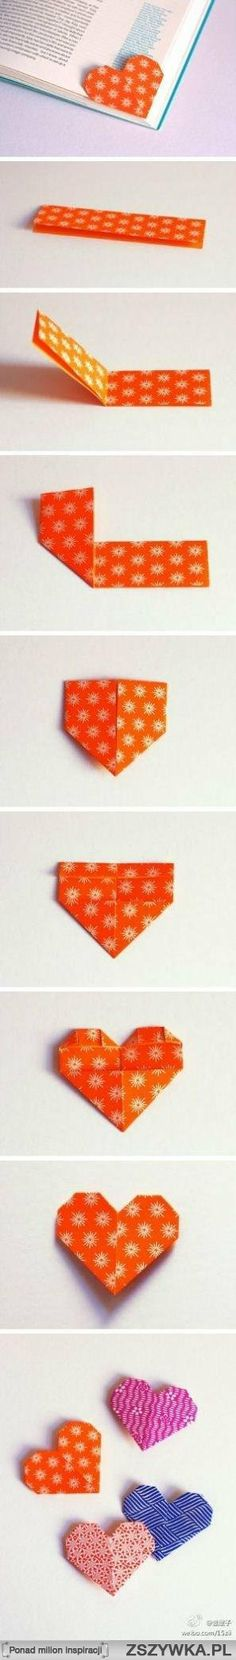 cute hearts, good little gift idea